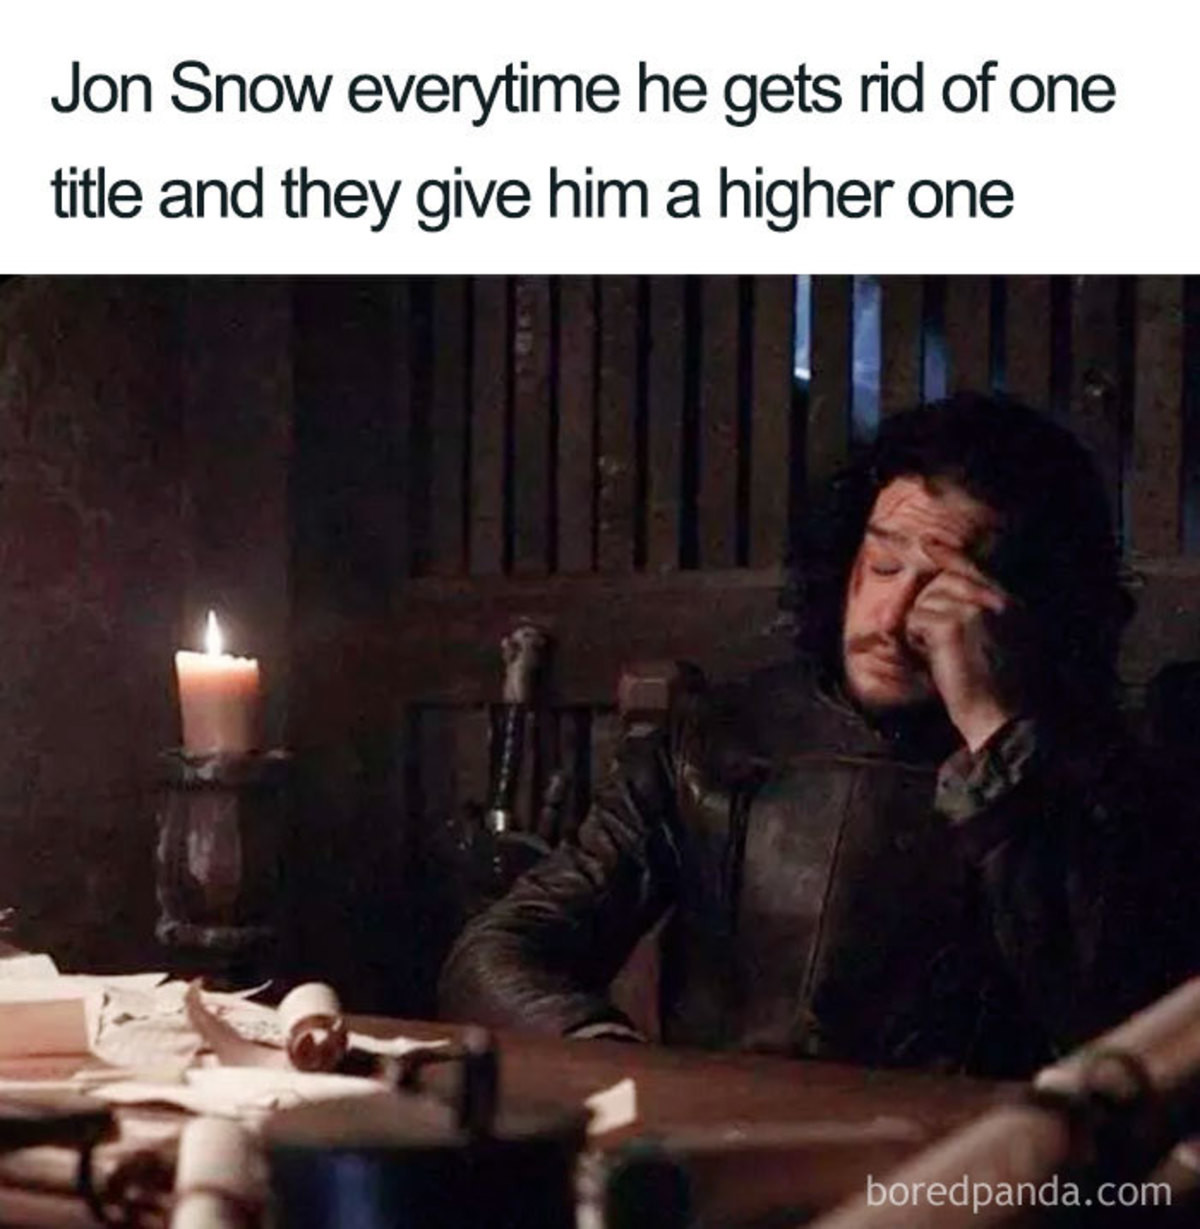 the new ing memes have arrived. .. Bran Stark must have angered the gods of puberty greatly...